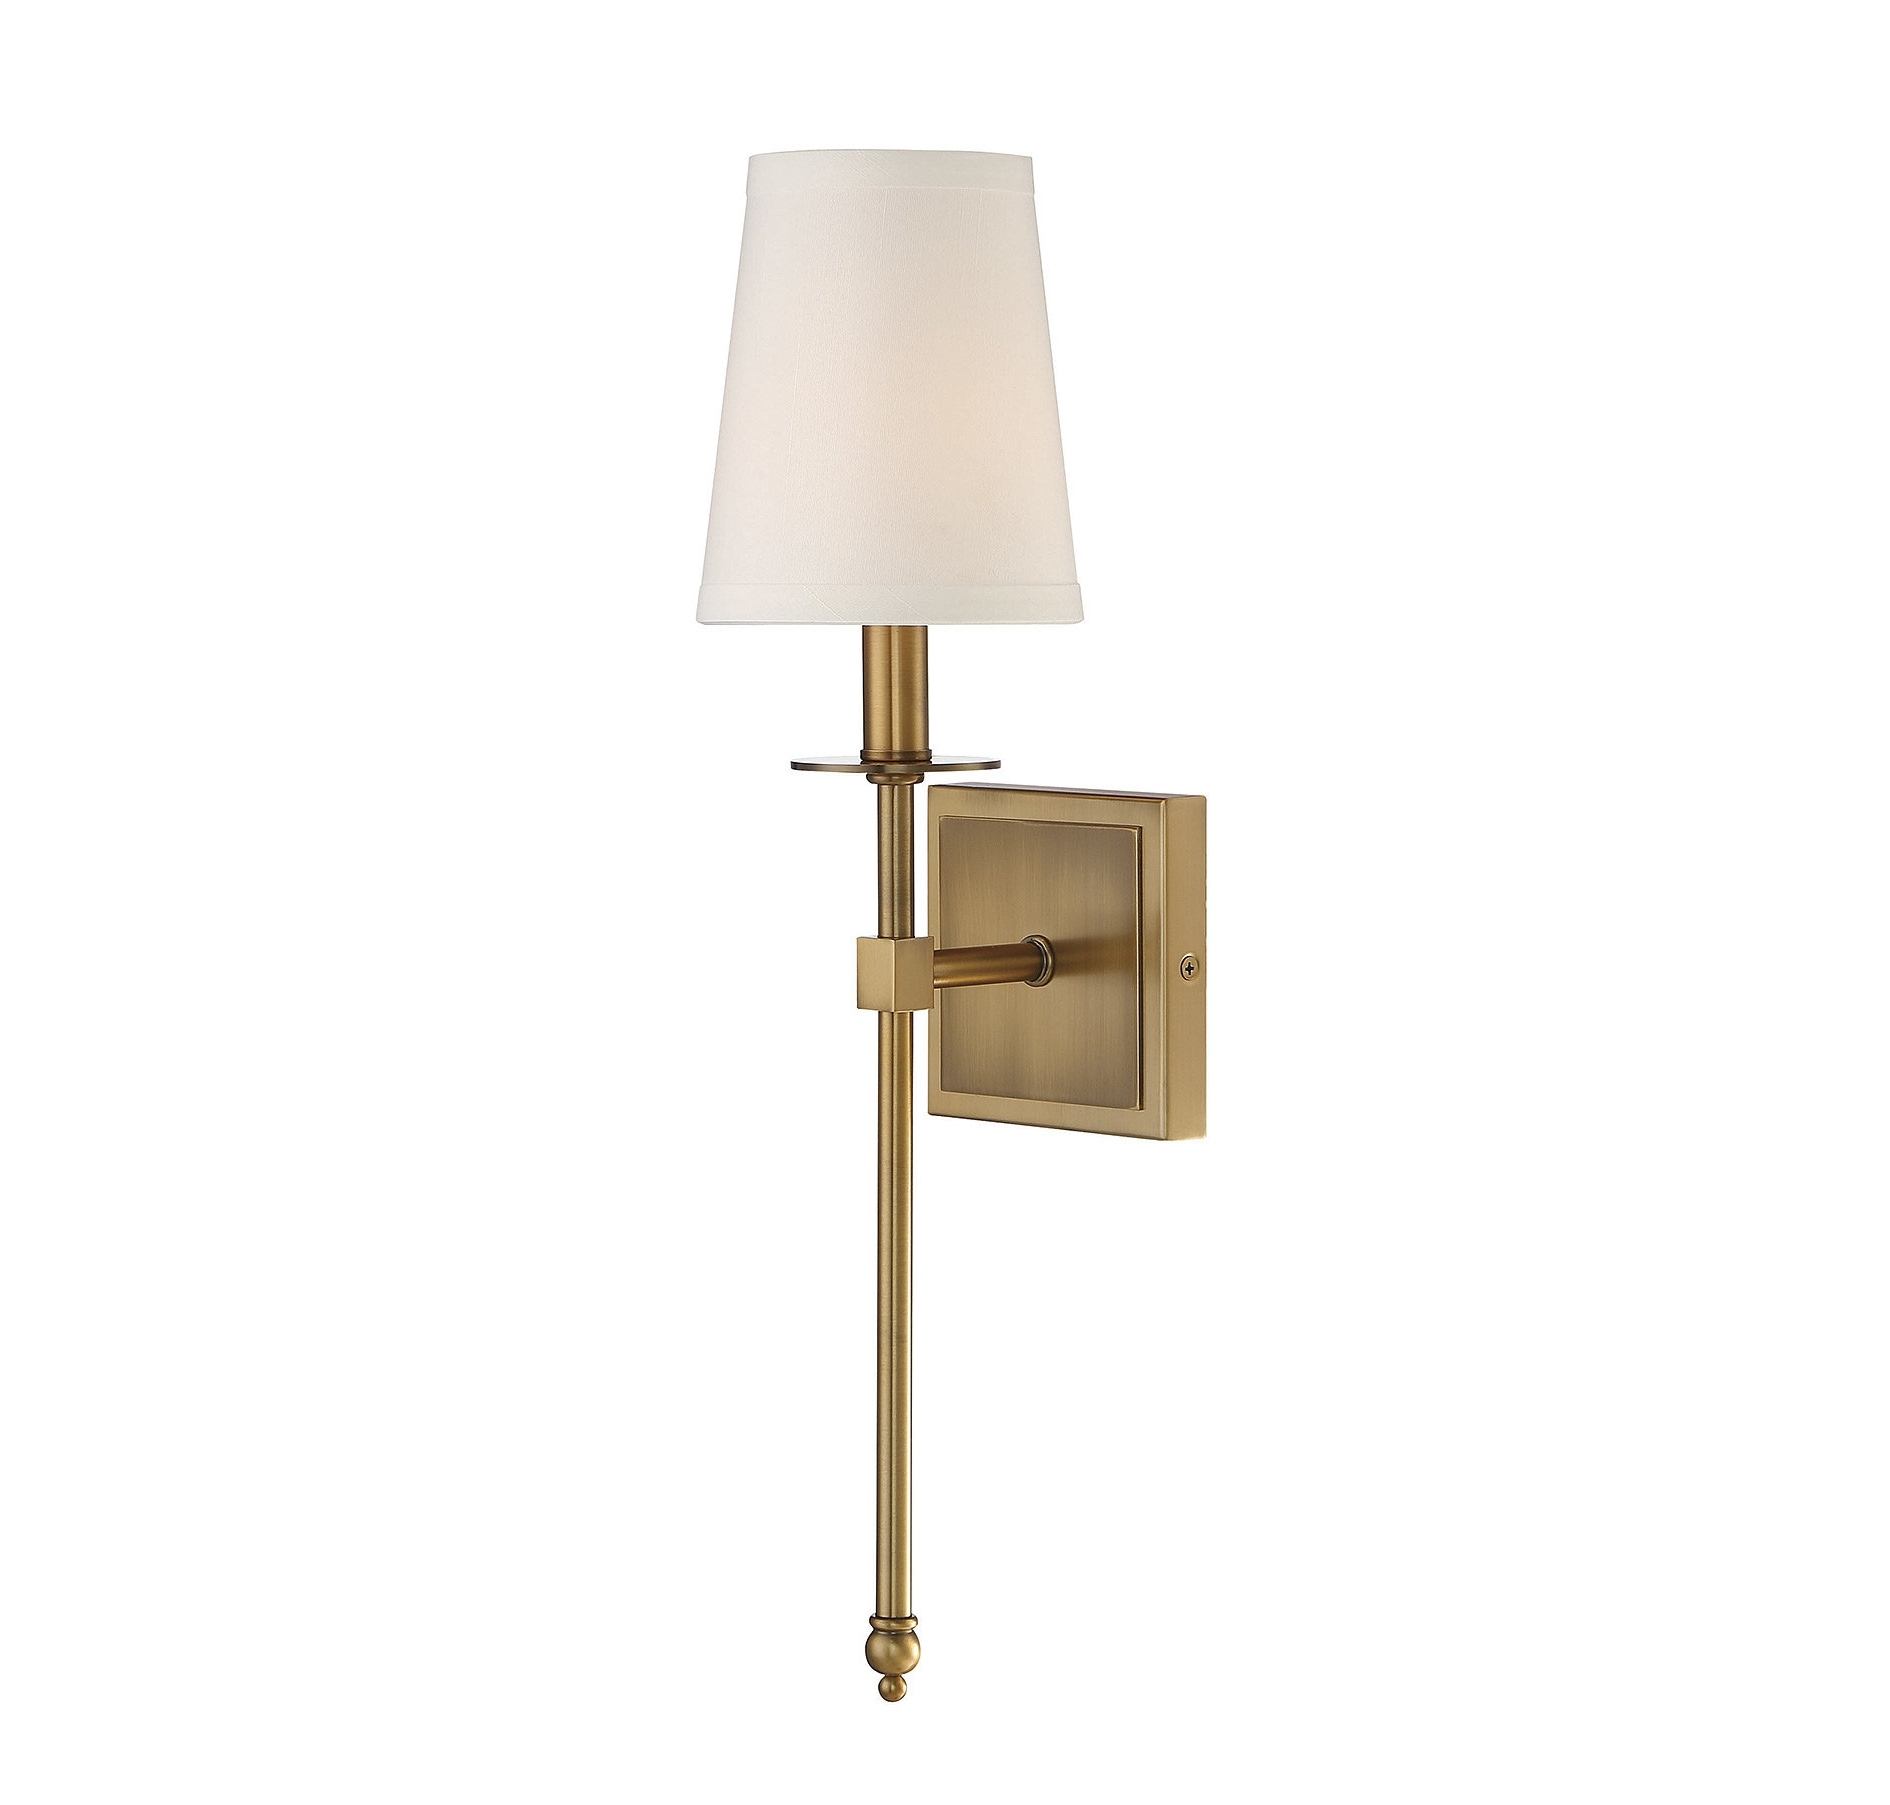 Latest Contemporary Outdoor Solar Lights At Wayfair In Mid Century Modern Sconces You'll Love (View 8 of 20)